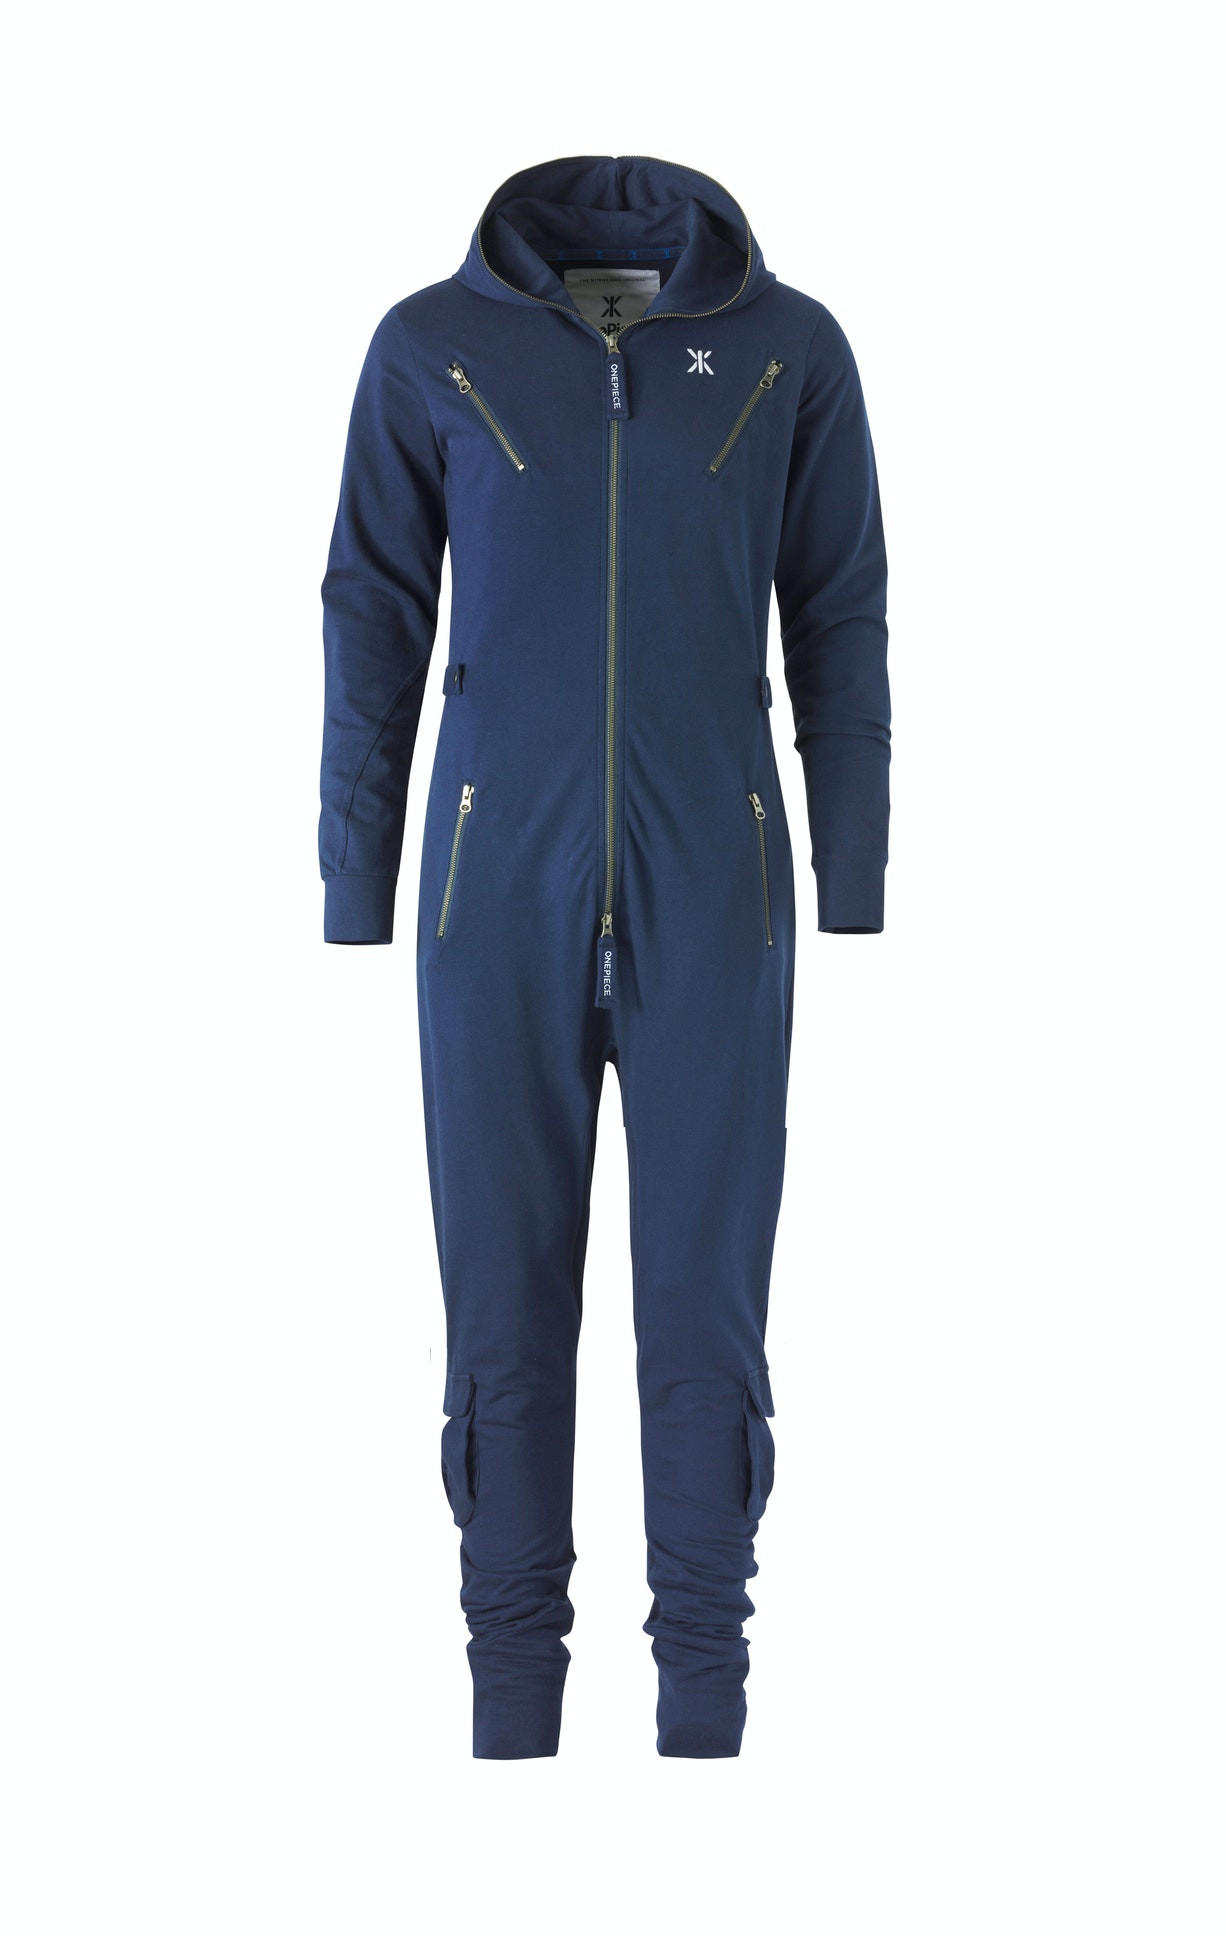 Air Jumpsuit Midnight Blue Fitted blue jumpsuit made from lightweight premium cotton. The jumpsuit has workwear inspired details, with metal zippers, cargo leg pockets and buttoned waist tightener, as well as a slightly dropped crotch.